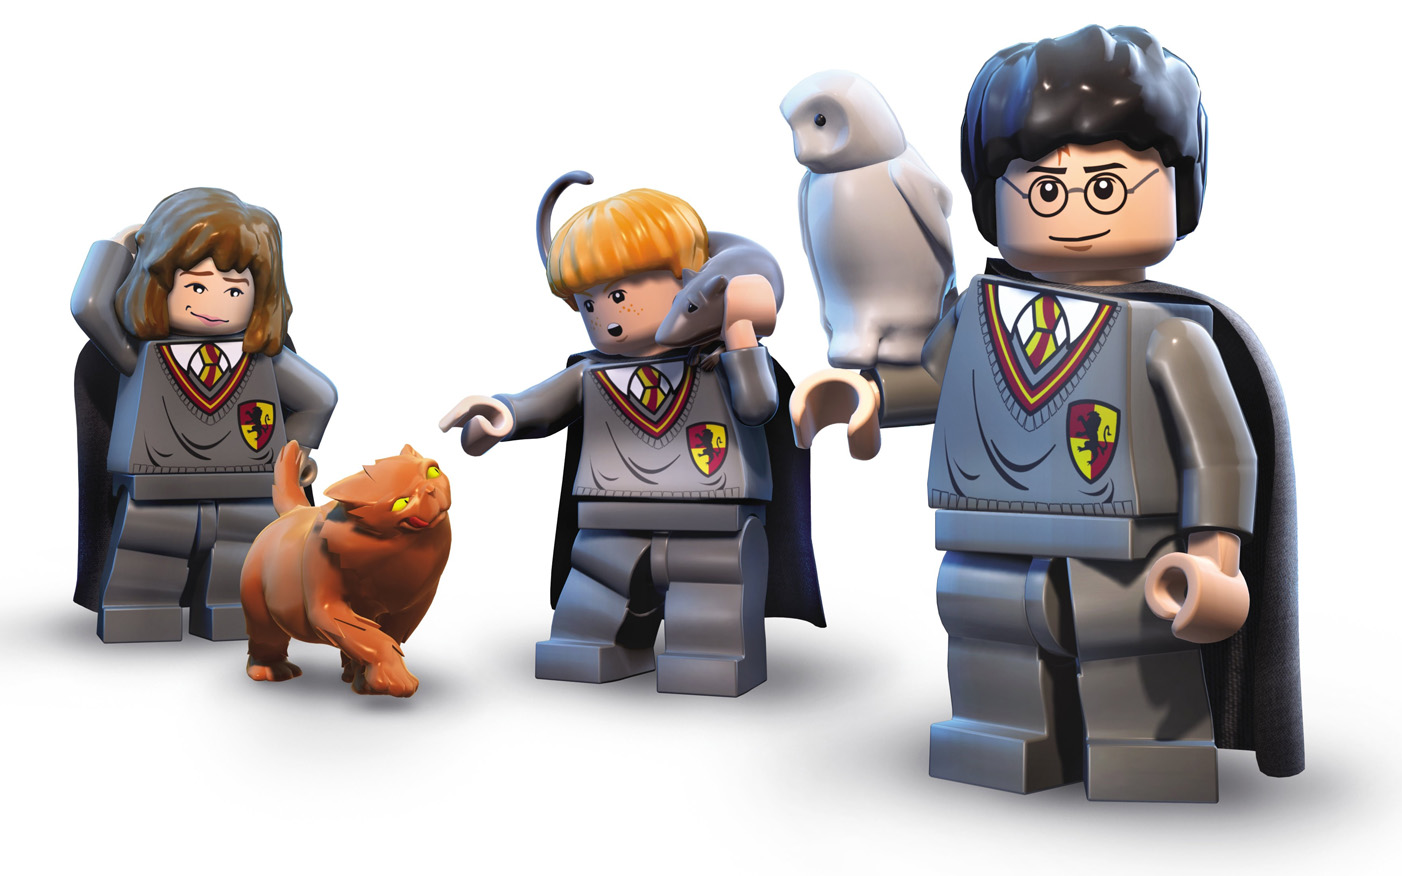 LEGO Dimensions Expansion Packs Based On The Goonies